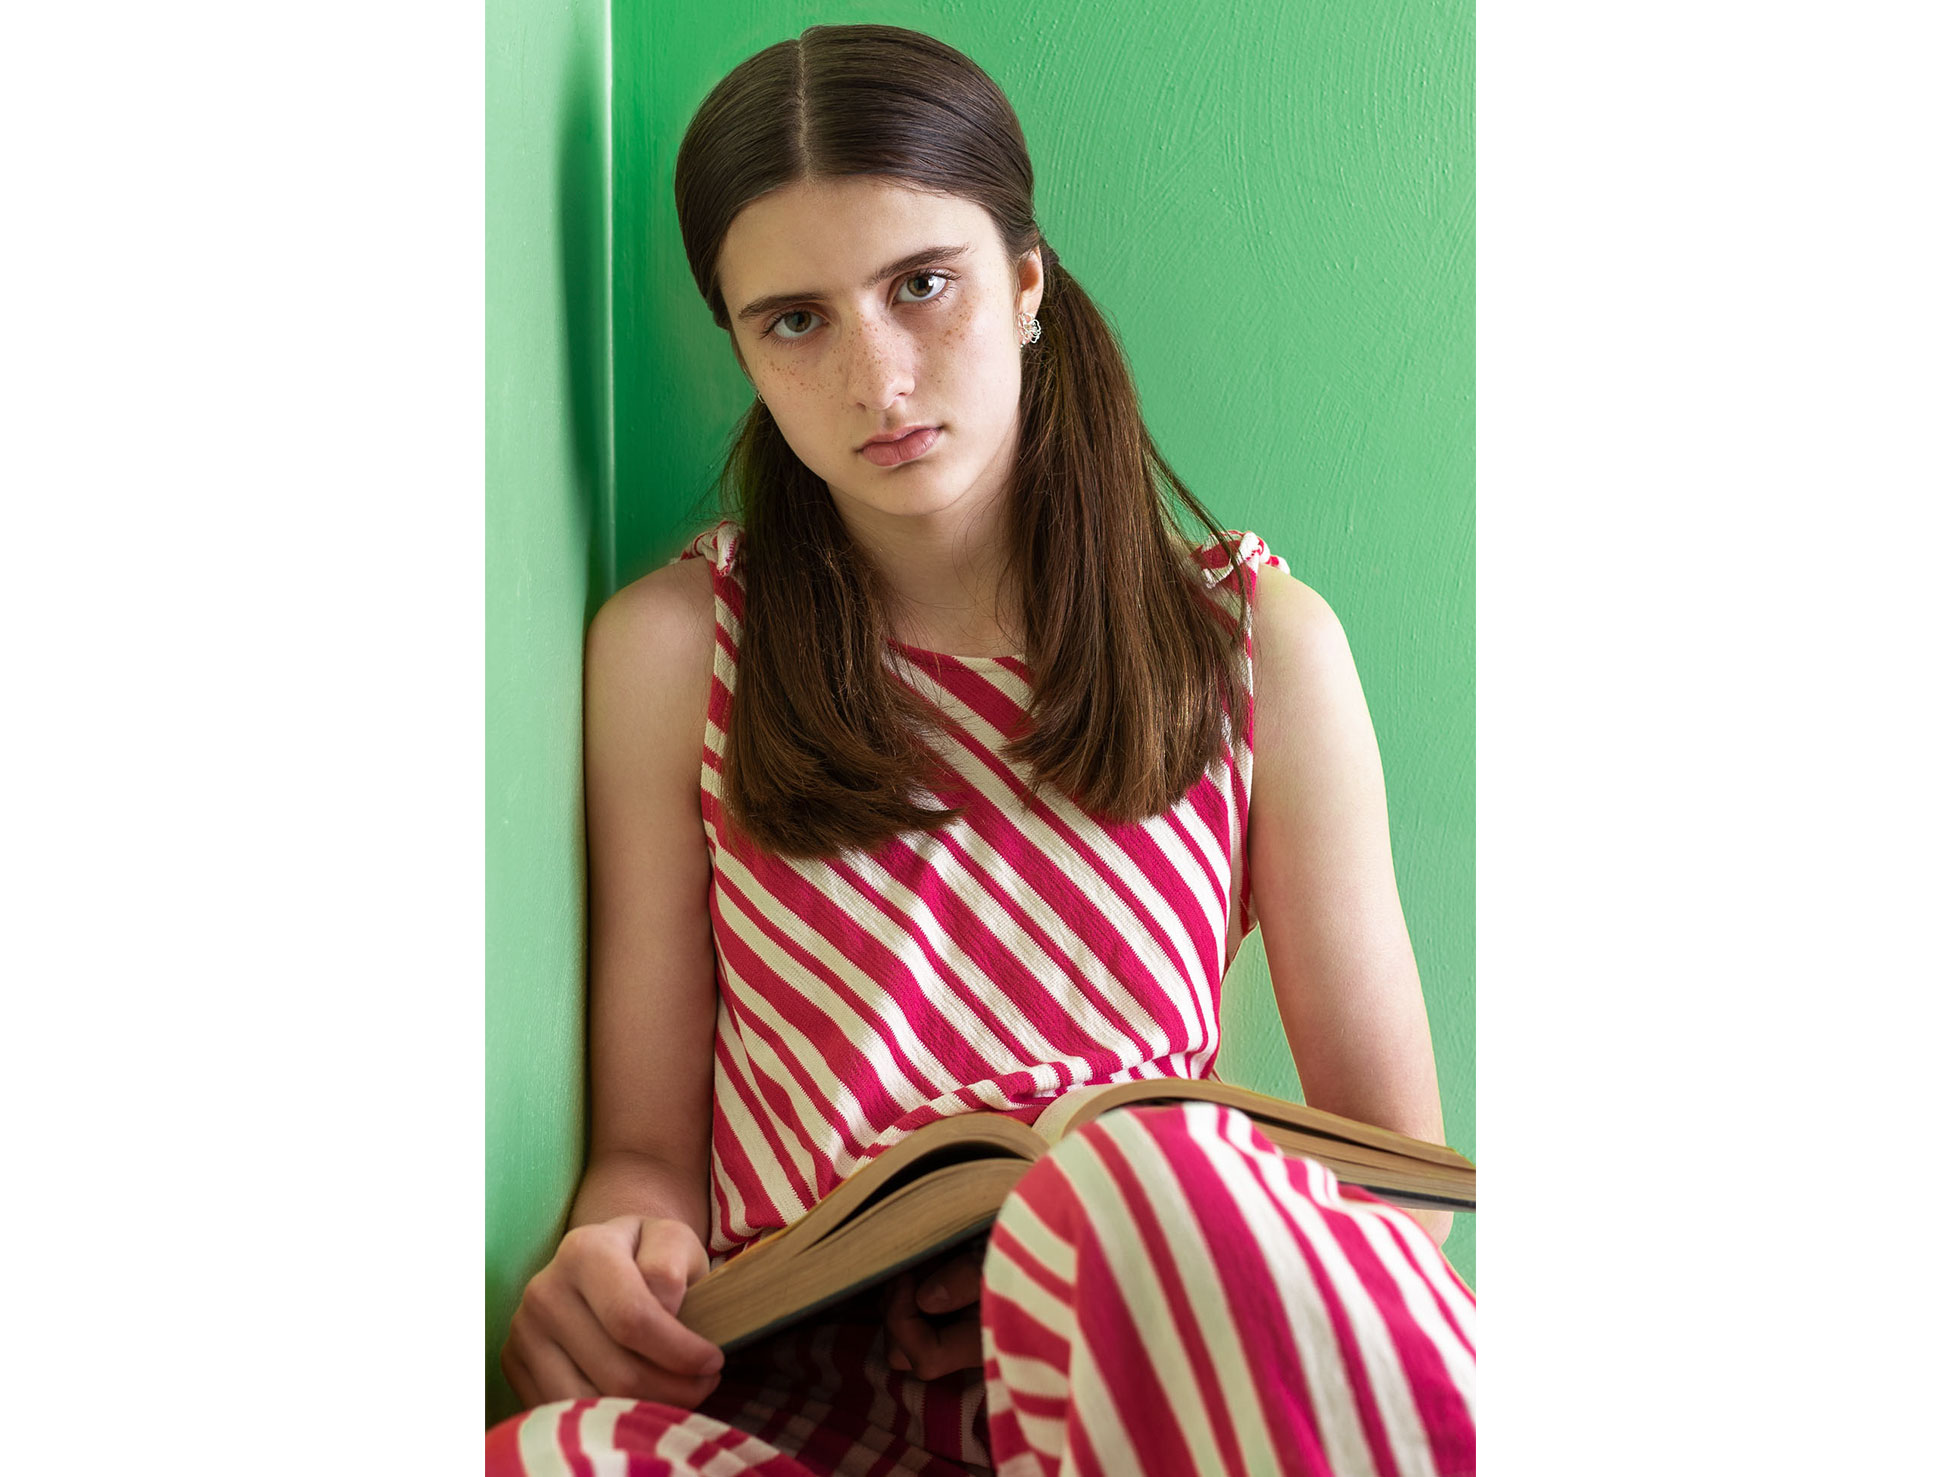 Portrait of a teenage girl with a book in her lap. Dressed in a pink-striped jumpsuit to contrast with the green wall she leans against.